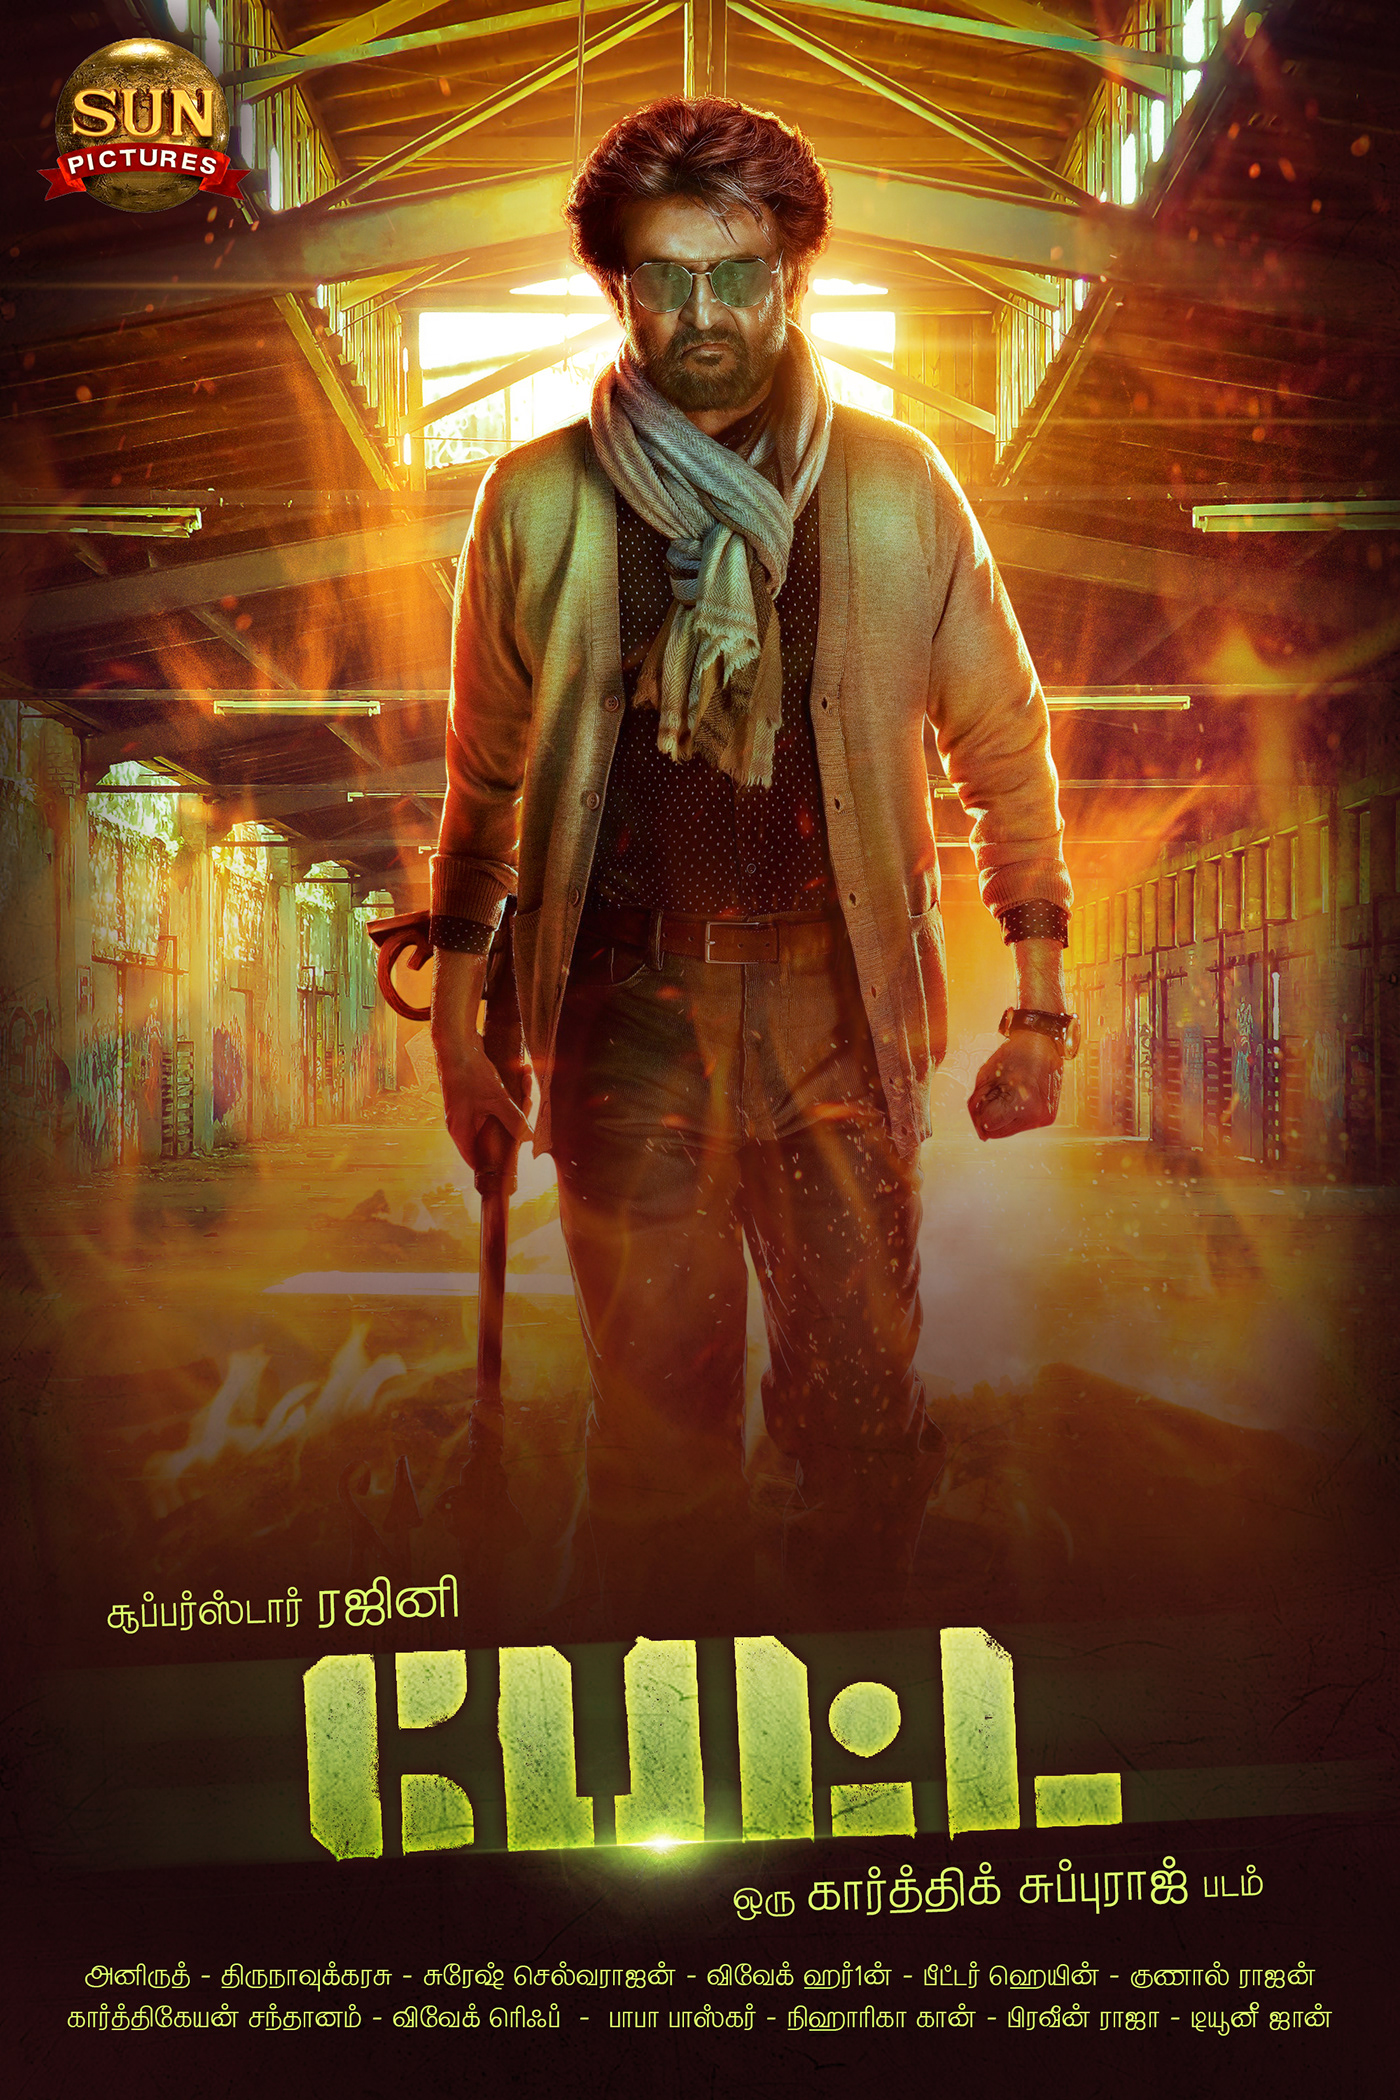 petta movie poster design